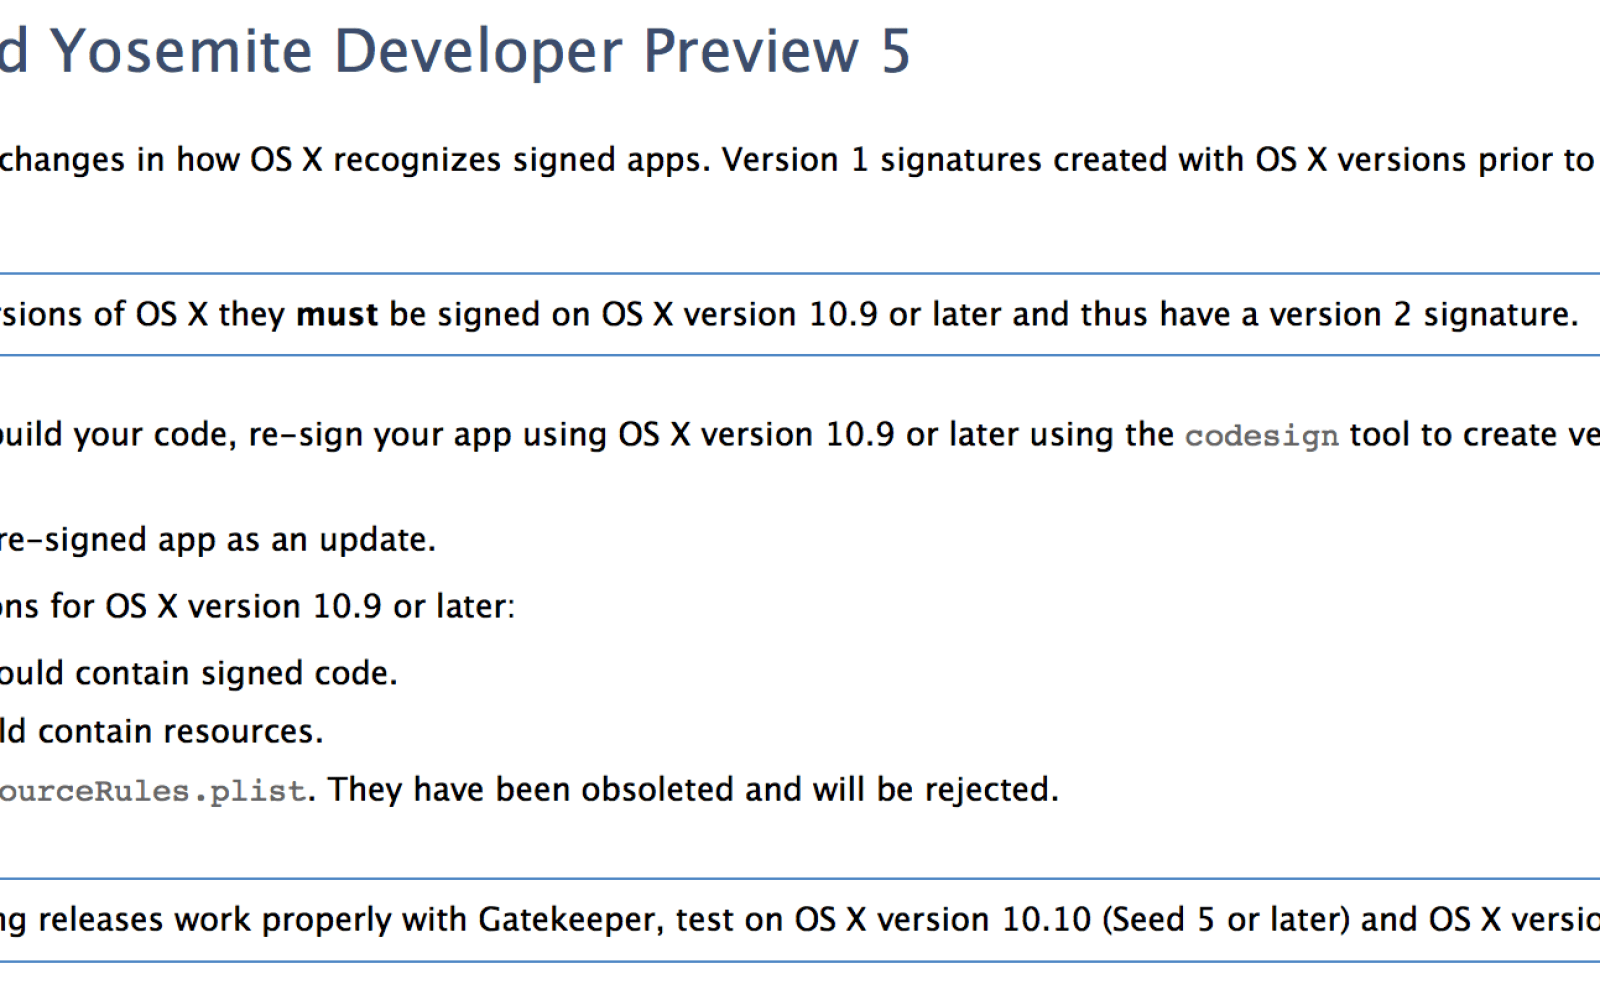 Apple changing Gatekeeper app signing rules in OS X 10.9.5 & Yosemite, could break some apps